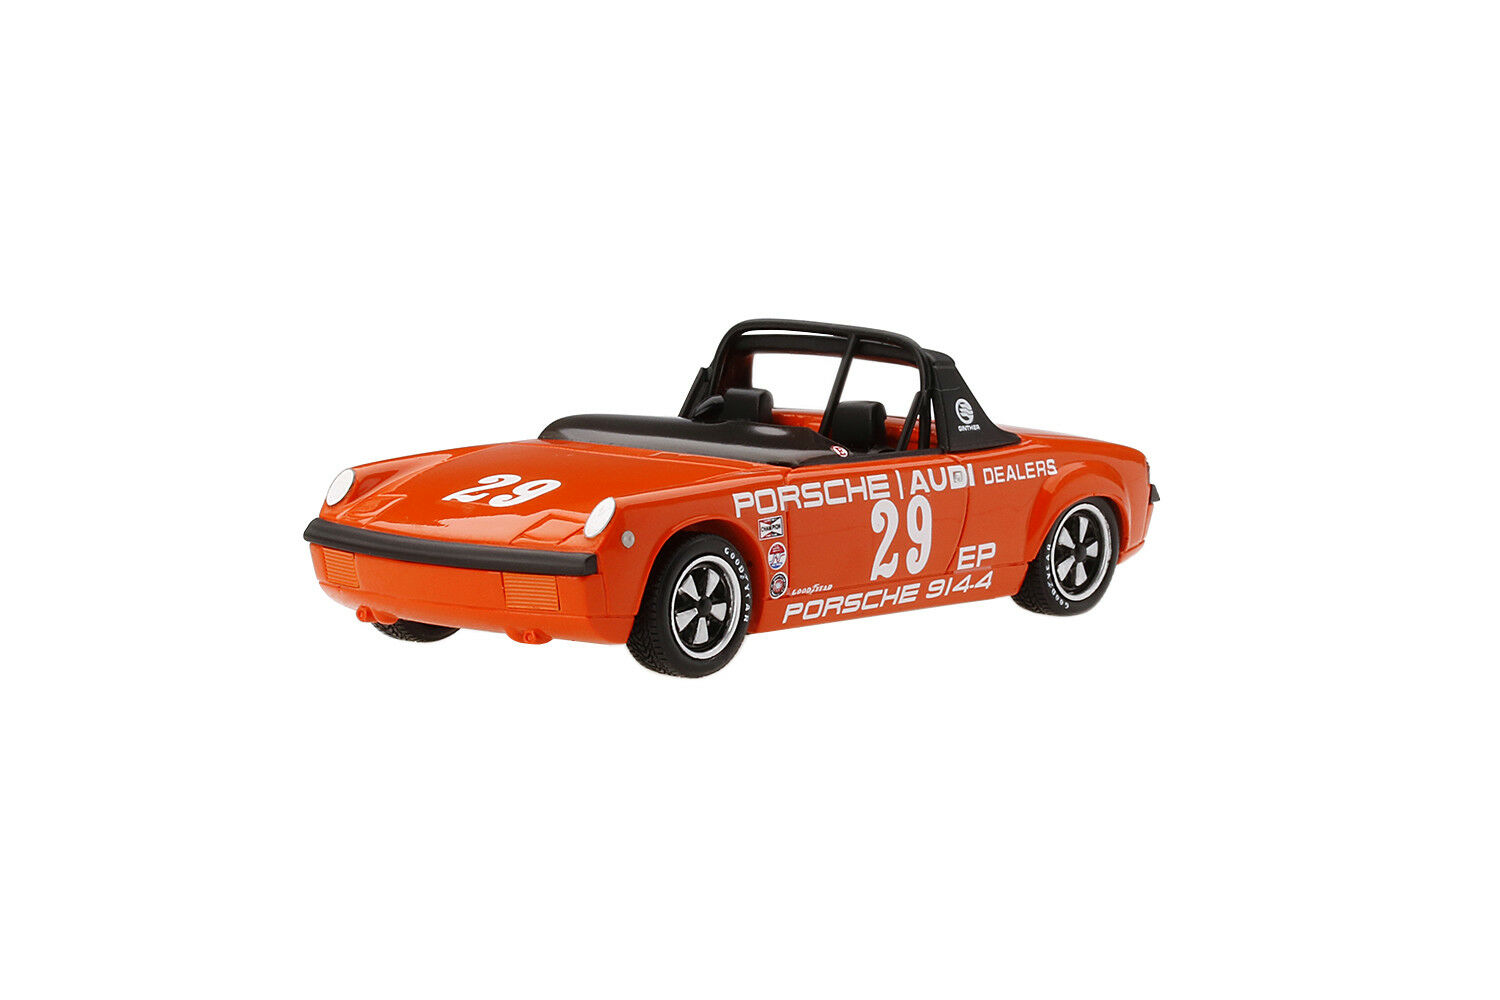 PORSCHE 914-4 R. GINTHER 1972 AMERICAN ROAD RACE 1 1 1 43 MODEL BY TSM 164338 581743